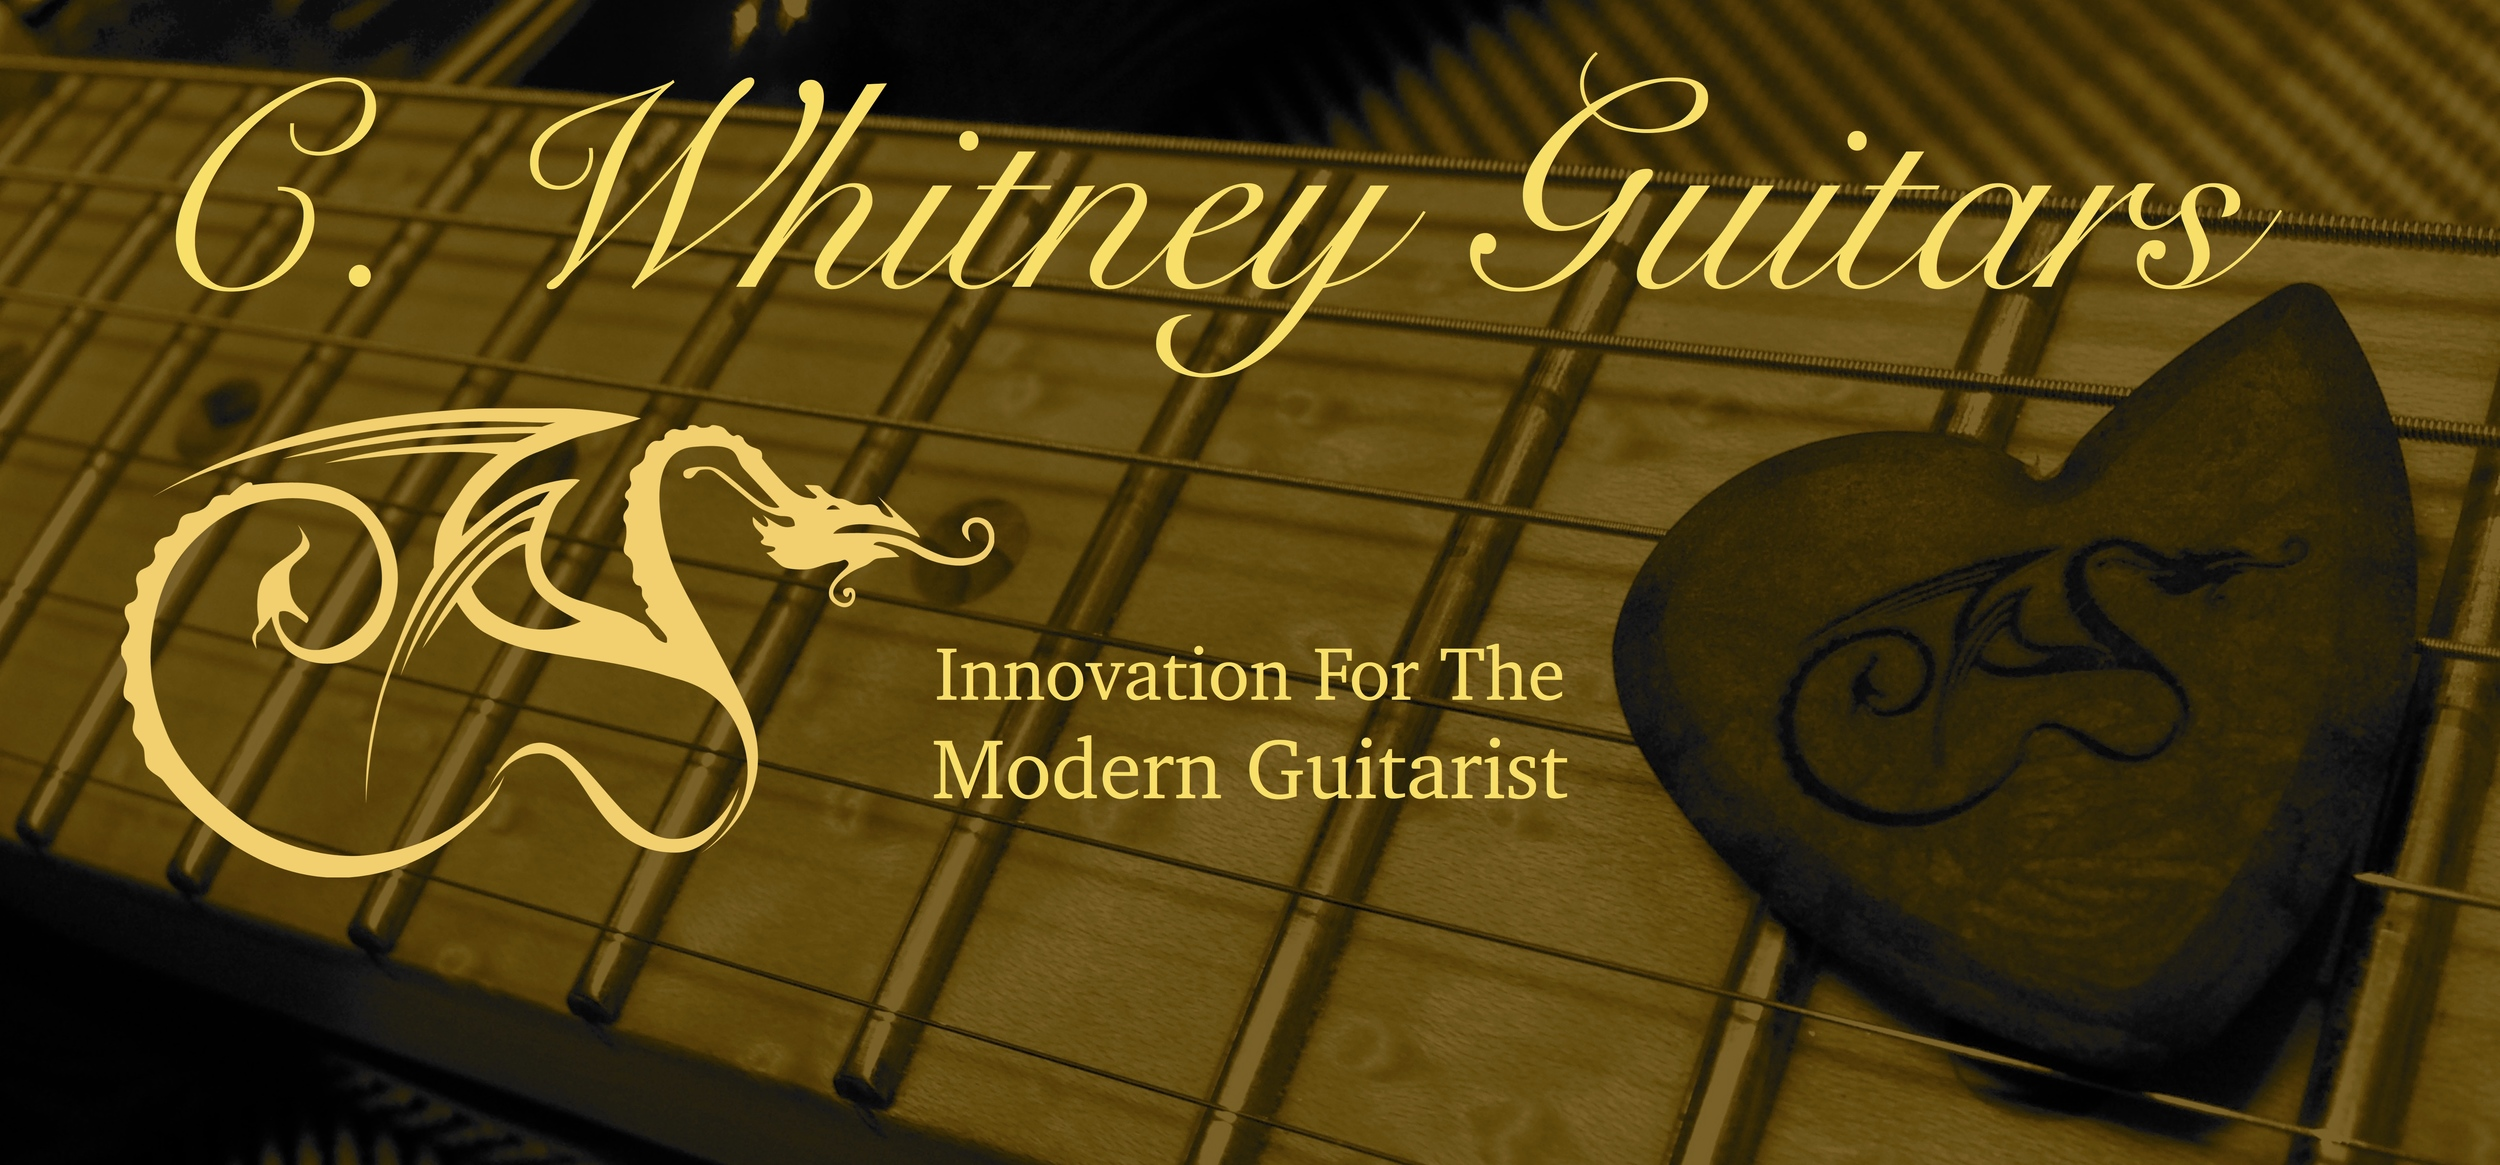 C. Whitney Guitars